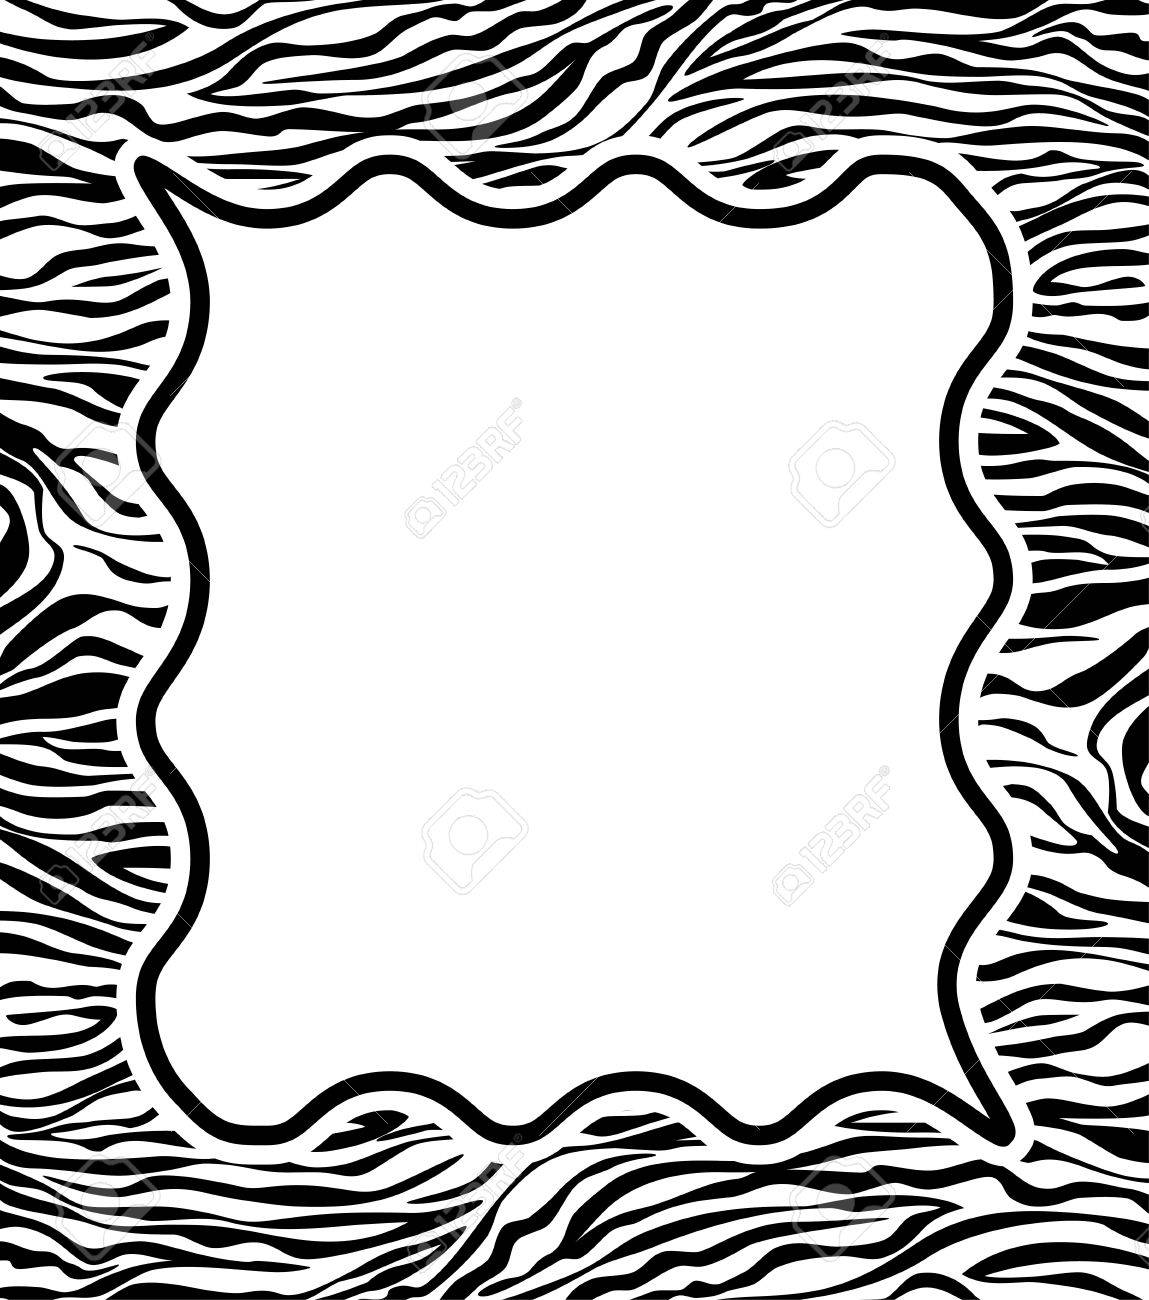 vector frame with abstract zebra skin texture and copy-space Stock Vector - 11162030